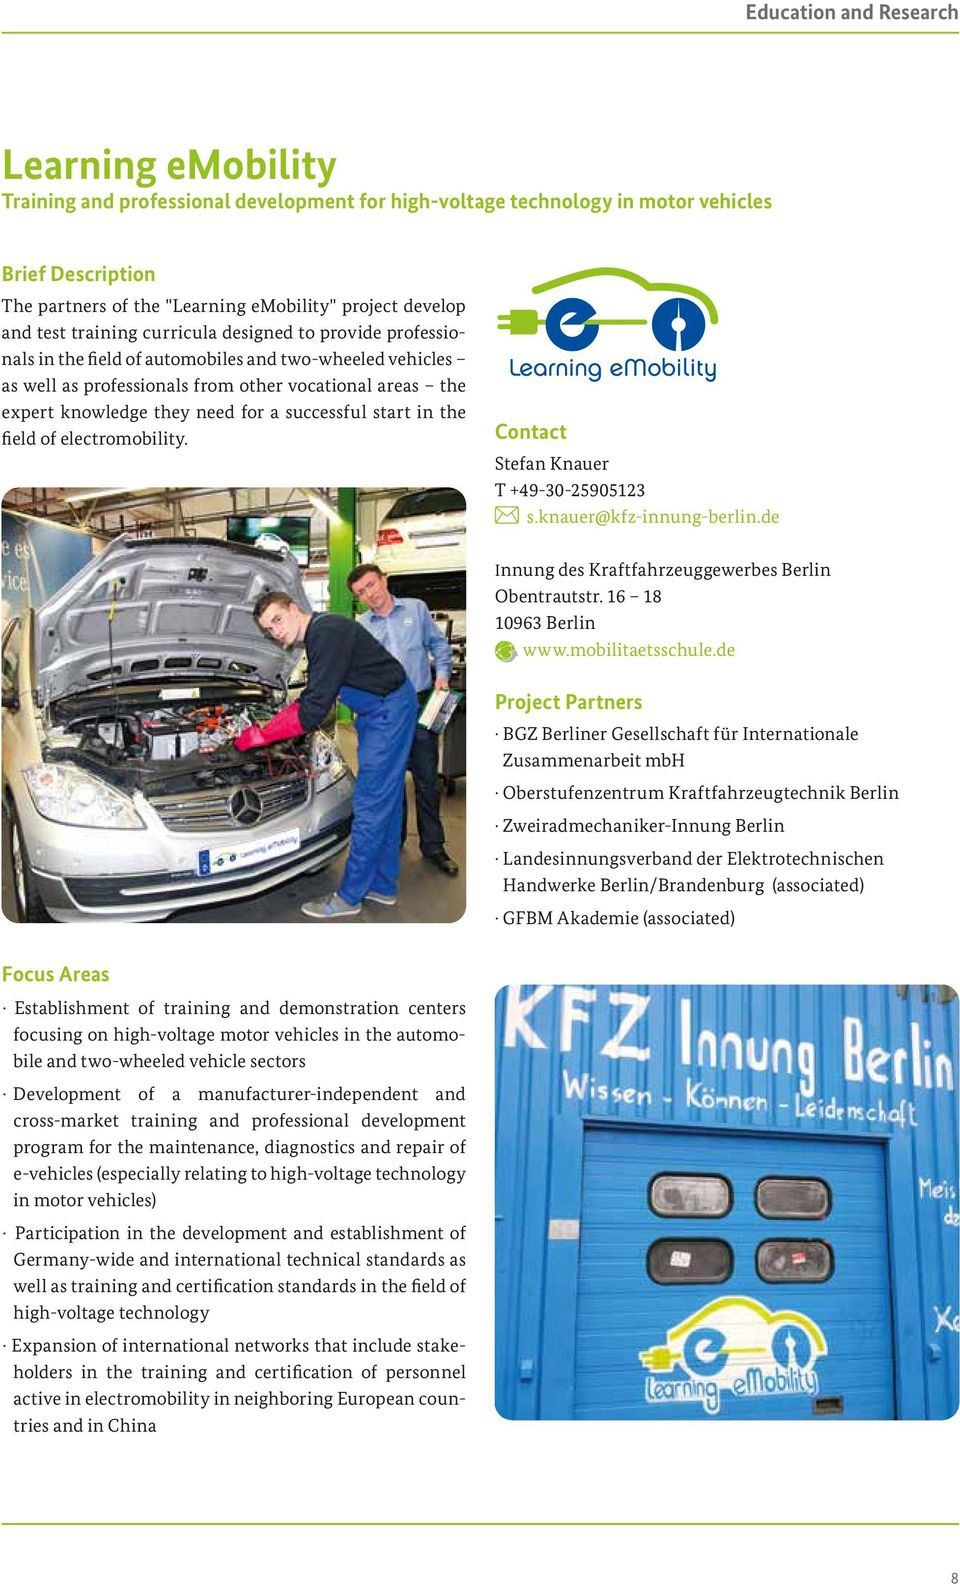 successful start in the field of electromobility. Contact Stefan Knauer T +49-30-25905123 s.knauer@kfz-innung-berlin.de Innung des Kraftfahrzeuggewerbes Berlin Obentrautstr. 16 18 10963 Berlin www.